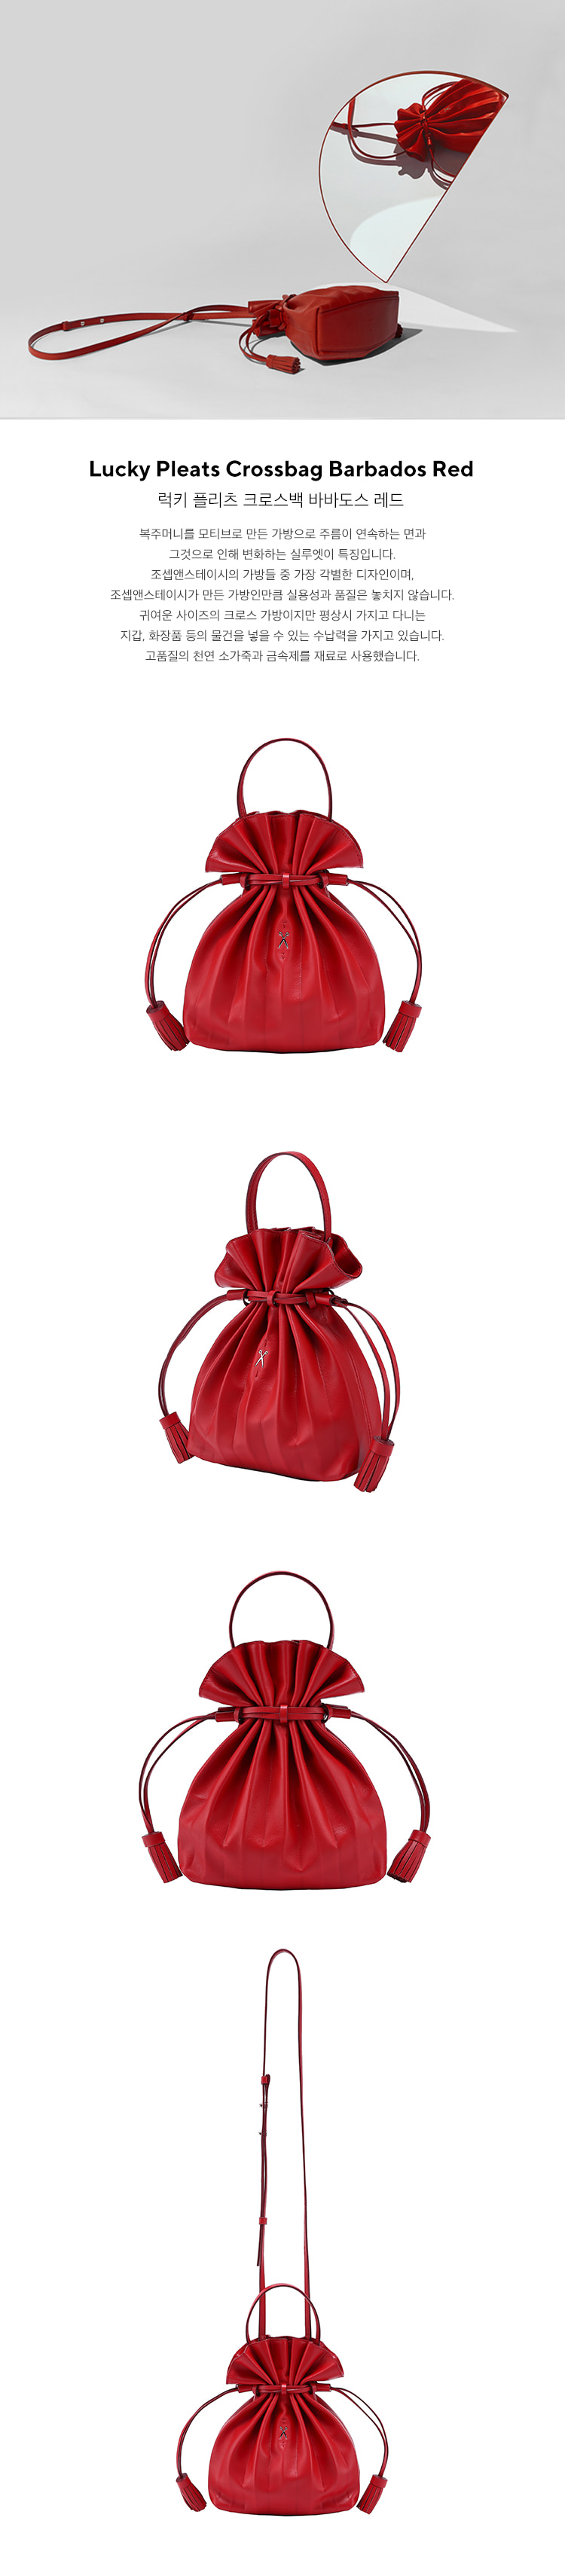 조셉앤스테이시(JOSEPH&STACEY) Lucky Pleats Crossbag Barbados Red